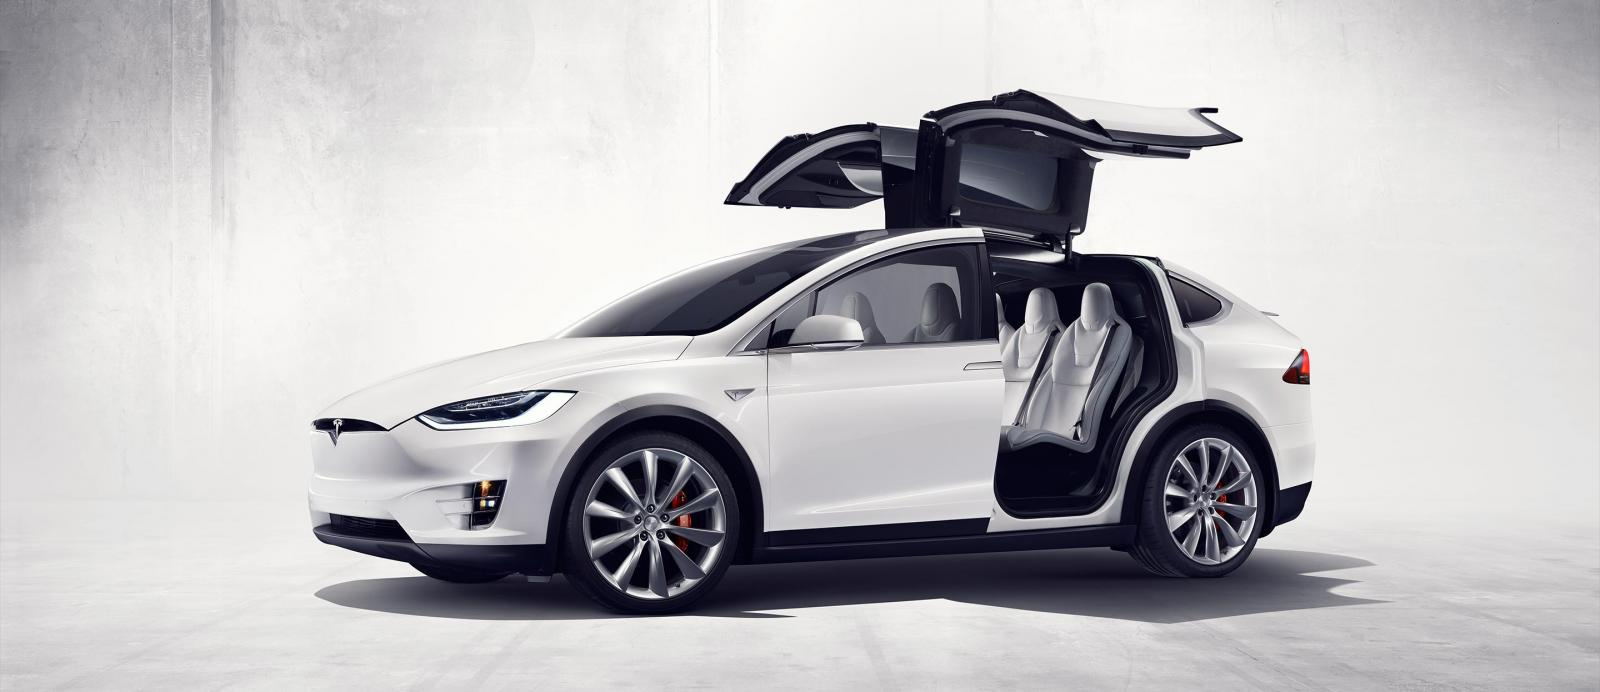 Recalls: Tesla is calling back some 53,000 vehicles worldwide for a parking brake issue